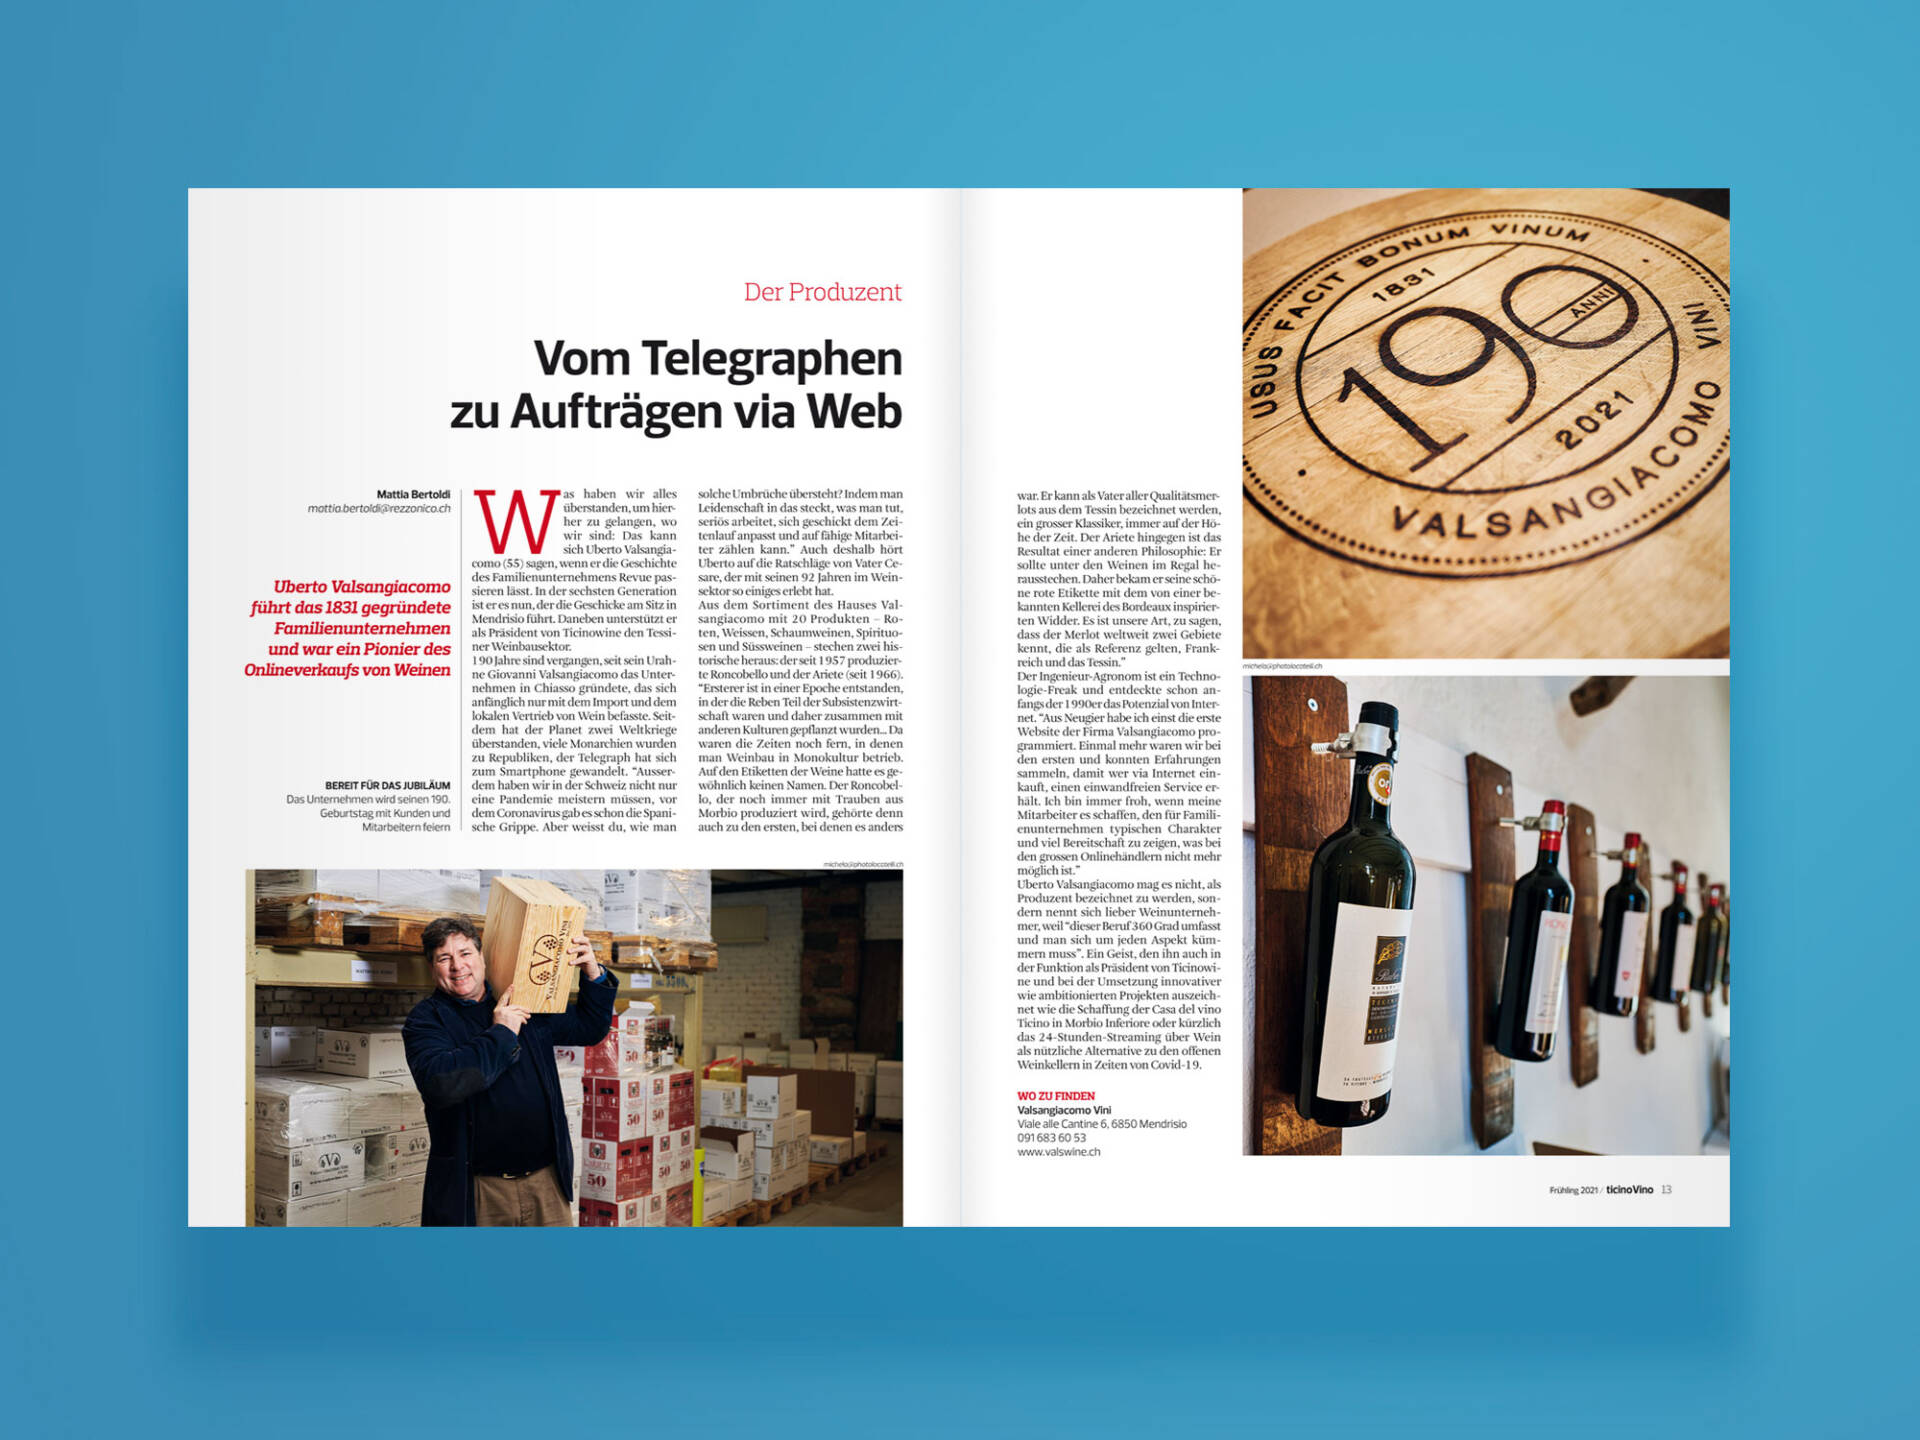 TicinoVino-Wein-Wenceslau-News-Design-04